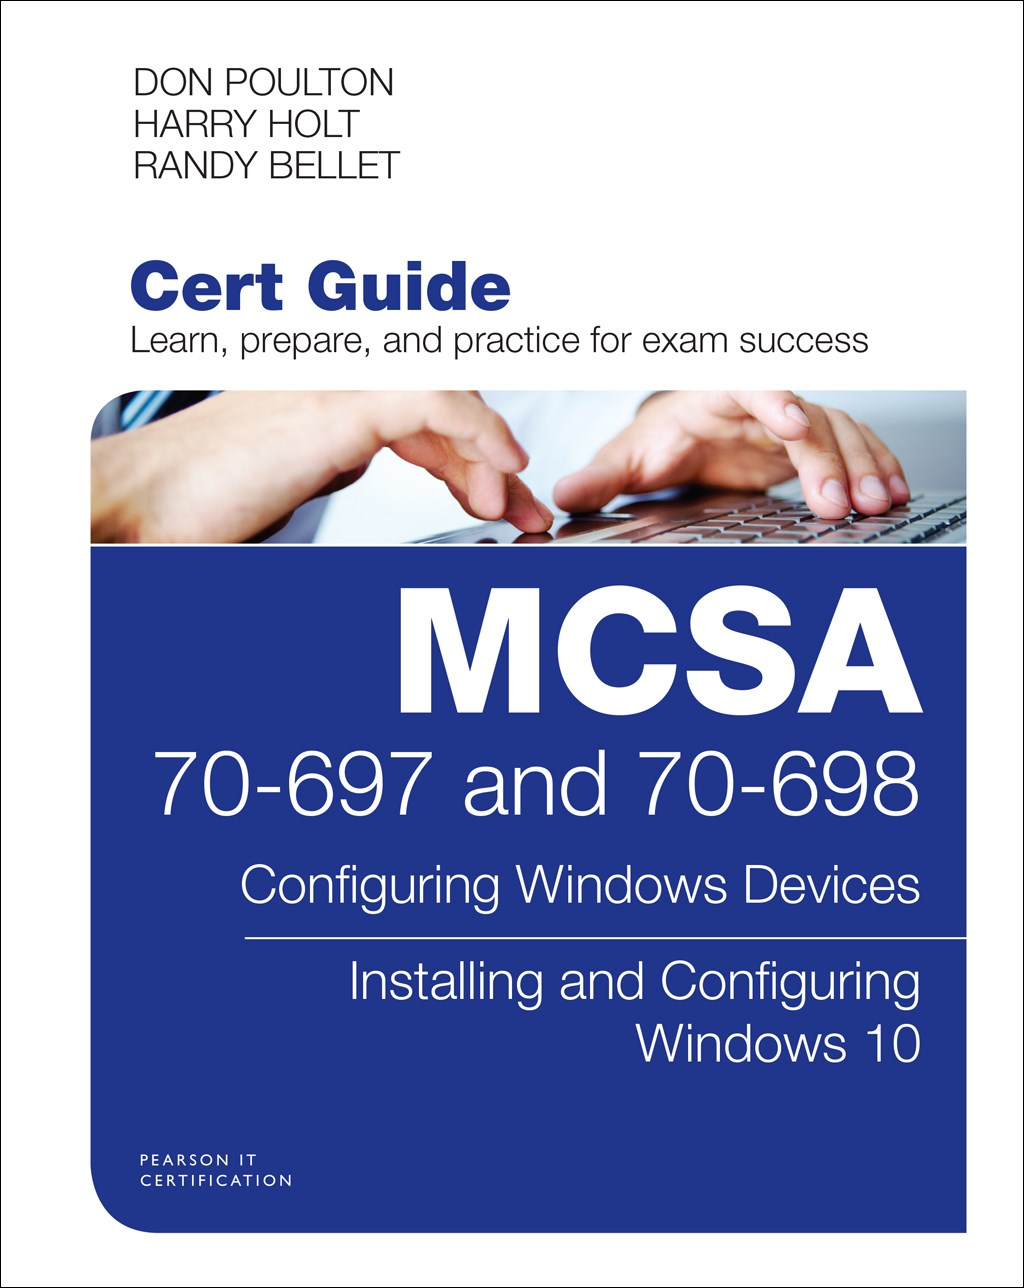 MCSA 70-697 and 70-698 Cert Guide: Configuring Windows Devices